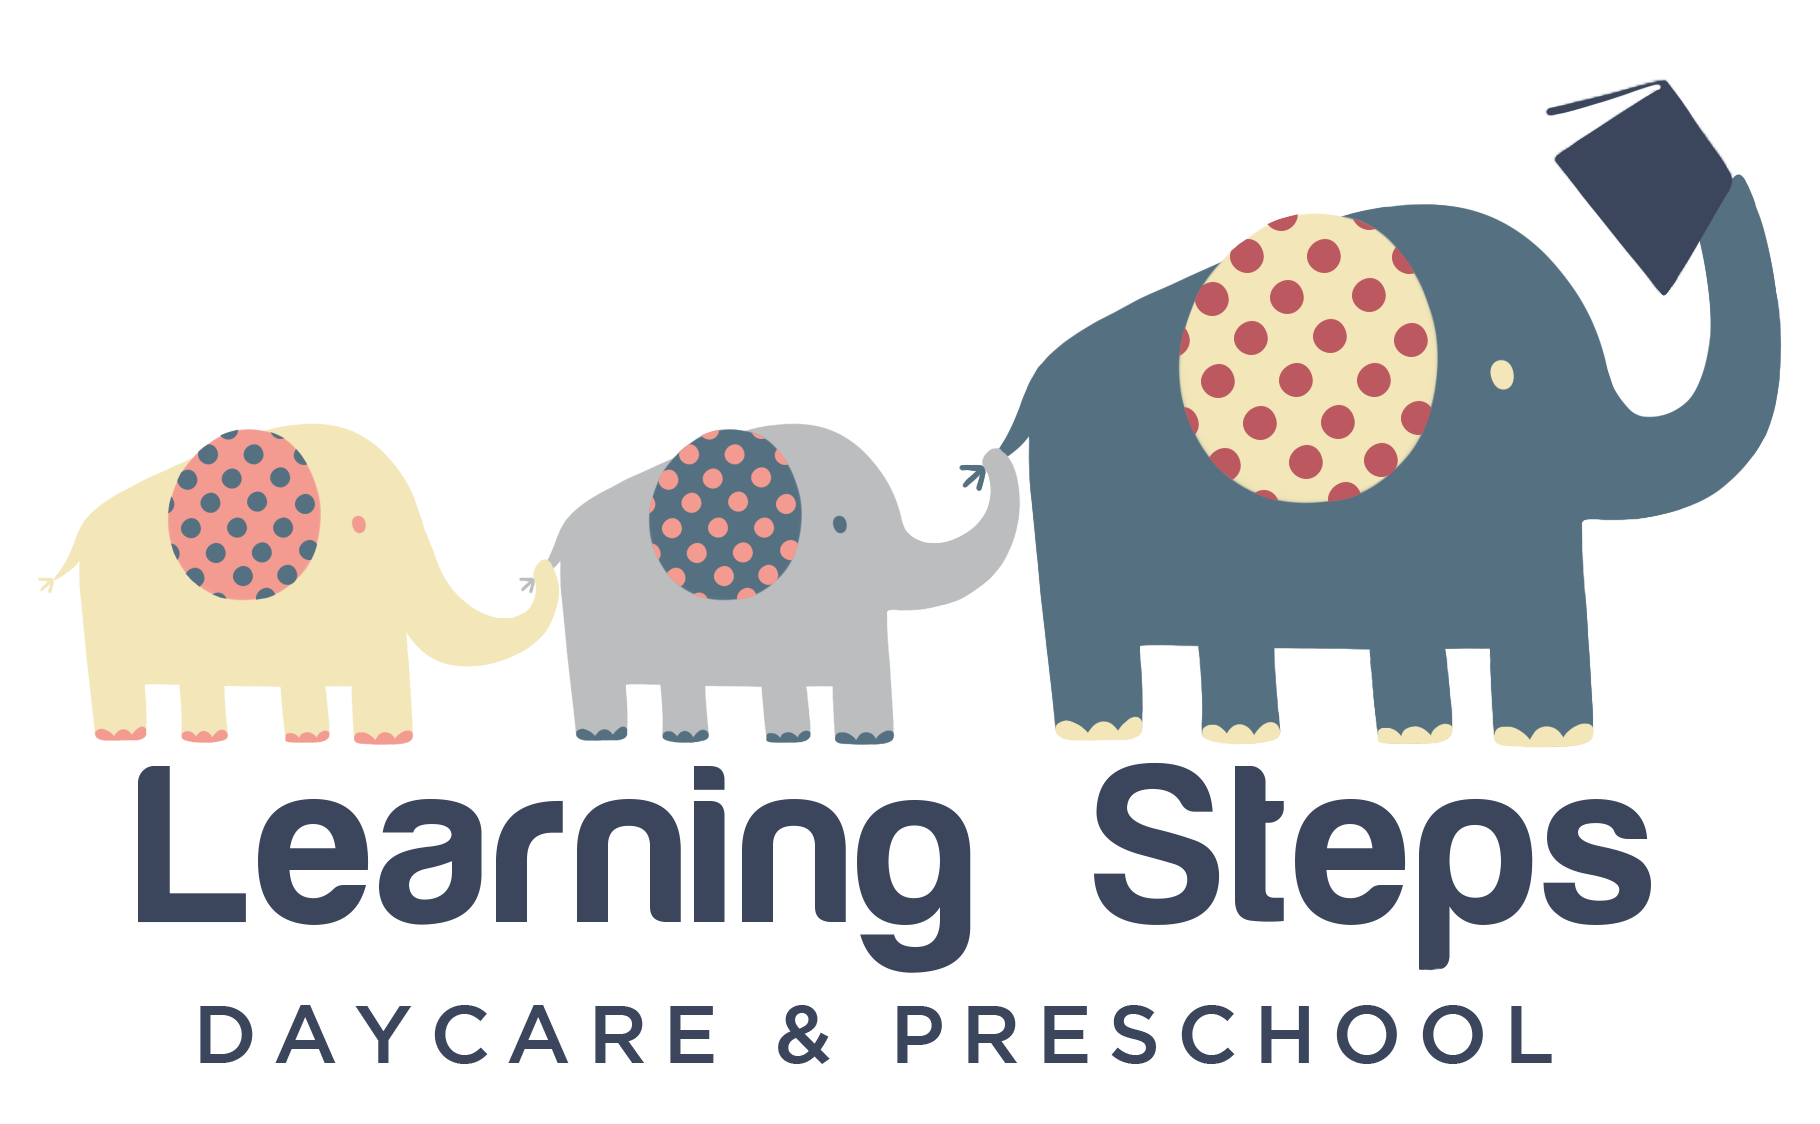 LEARNING STEPS DAY CARE CENTER